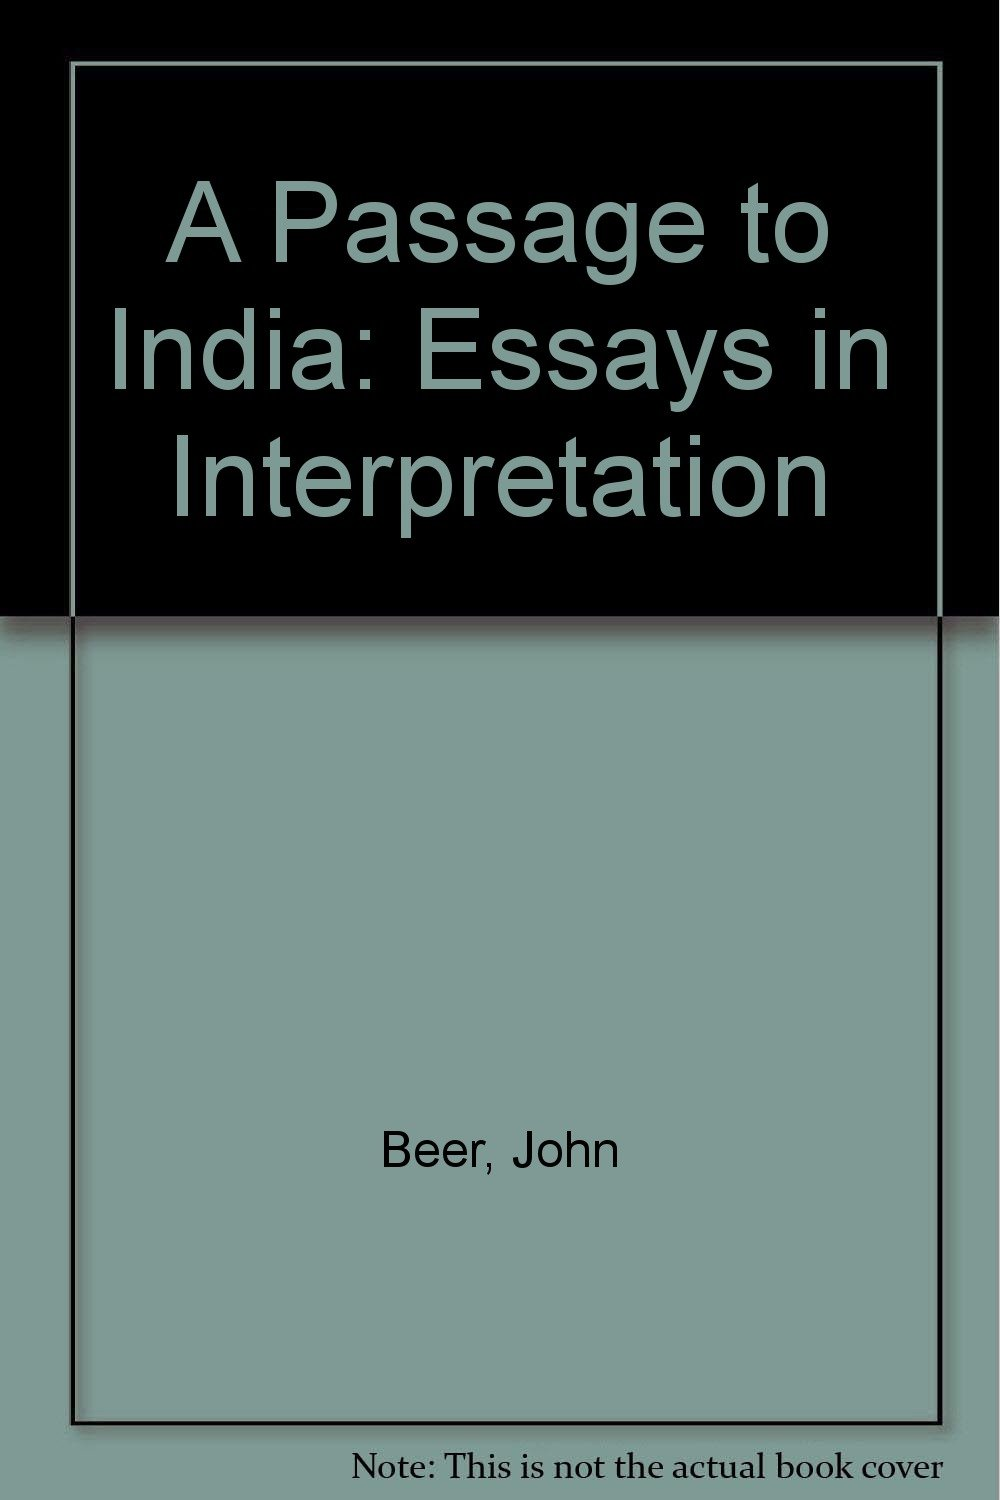 a passage to essays in interpretation amazon co uk john a passage to essays in interpretation amazon co uk john beer 0000389206024 books